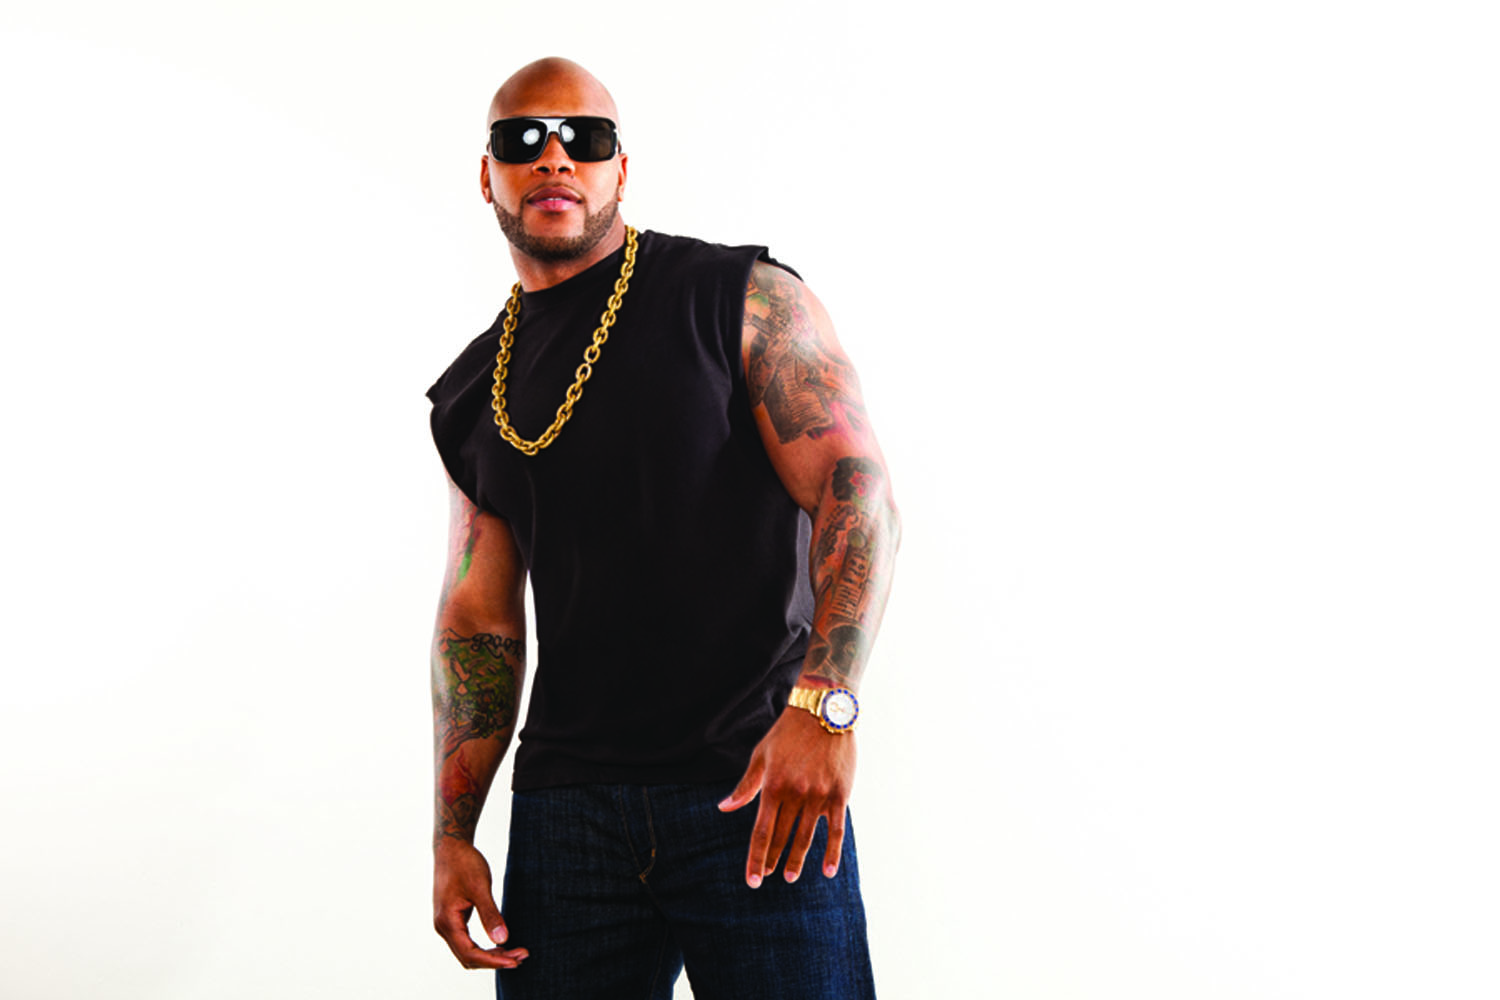 flo-rida_new-main-pub_photo-credit-alex-kirzhner